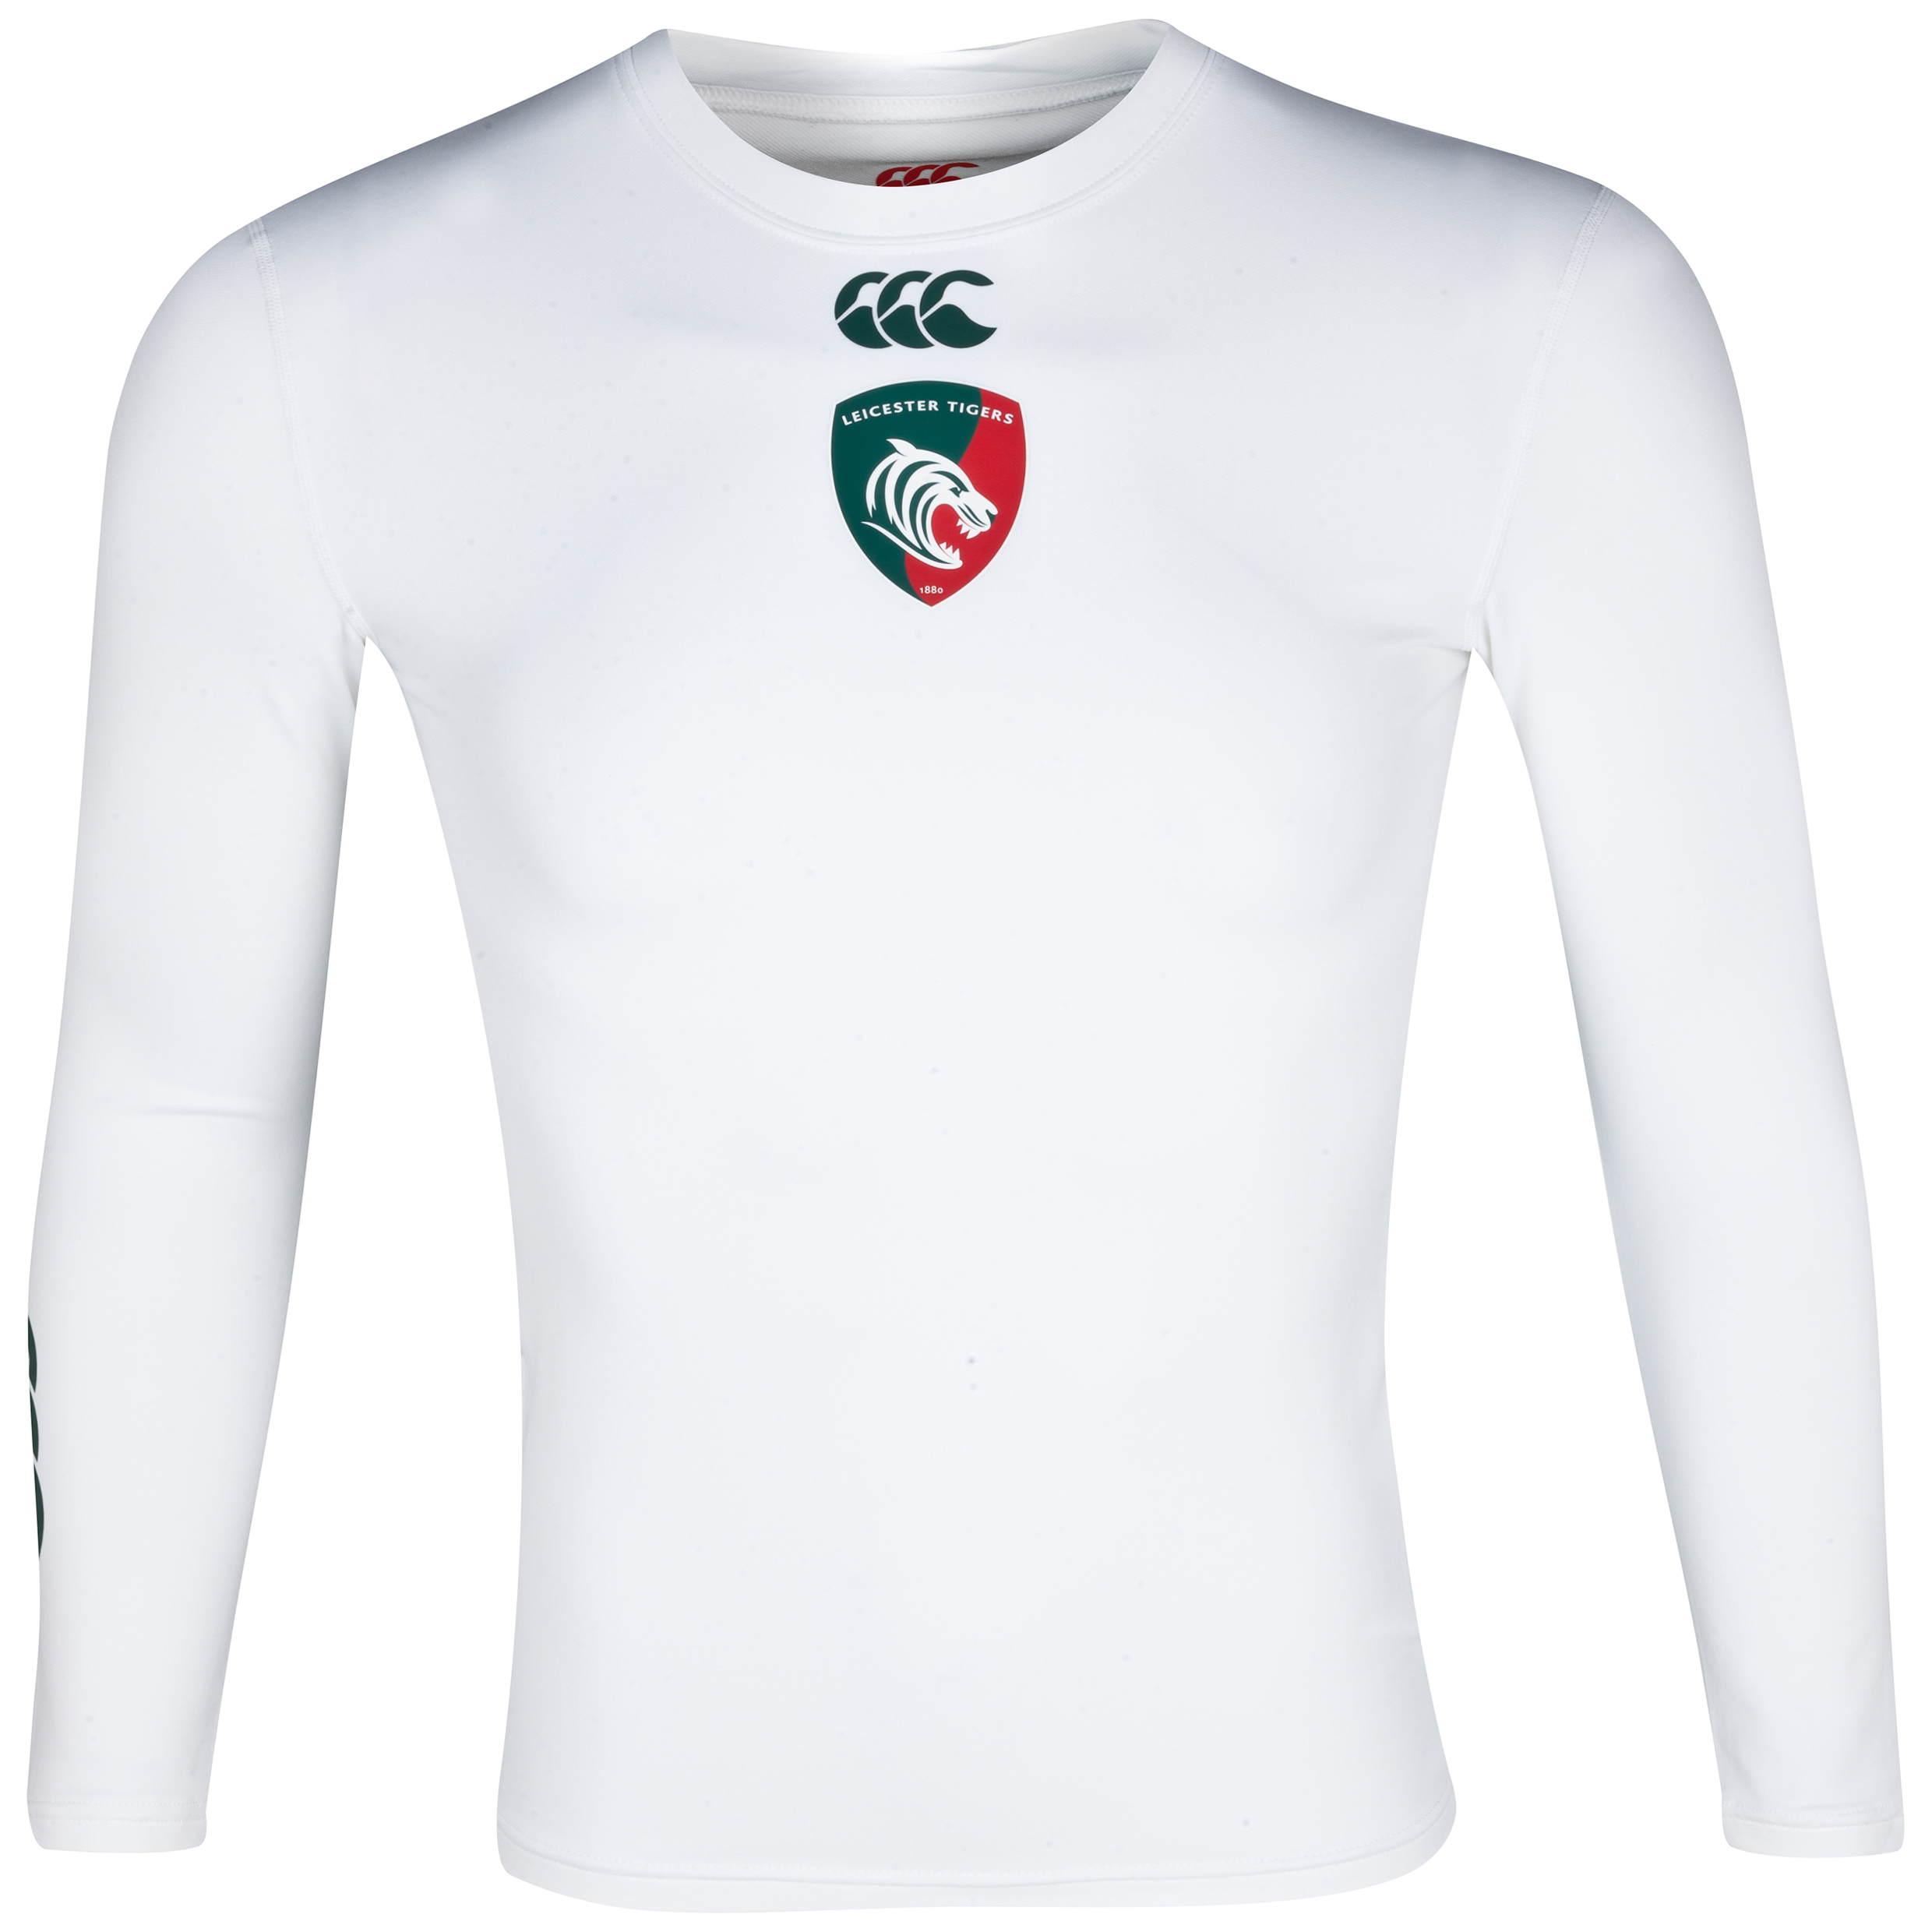 Leicester Tigers Alternate Supporters Cold Baselayer 2013/14 - Long Sleeved